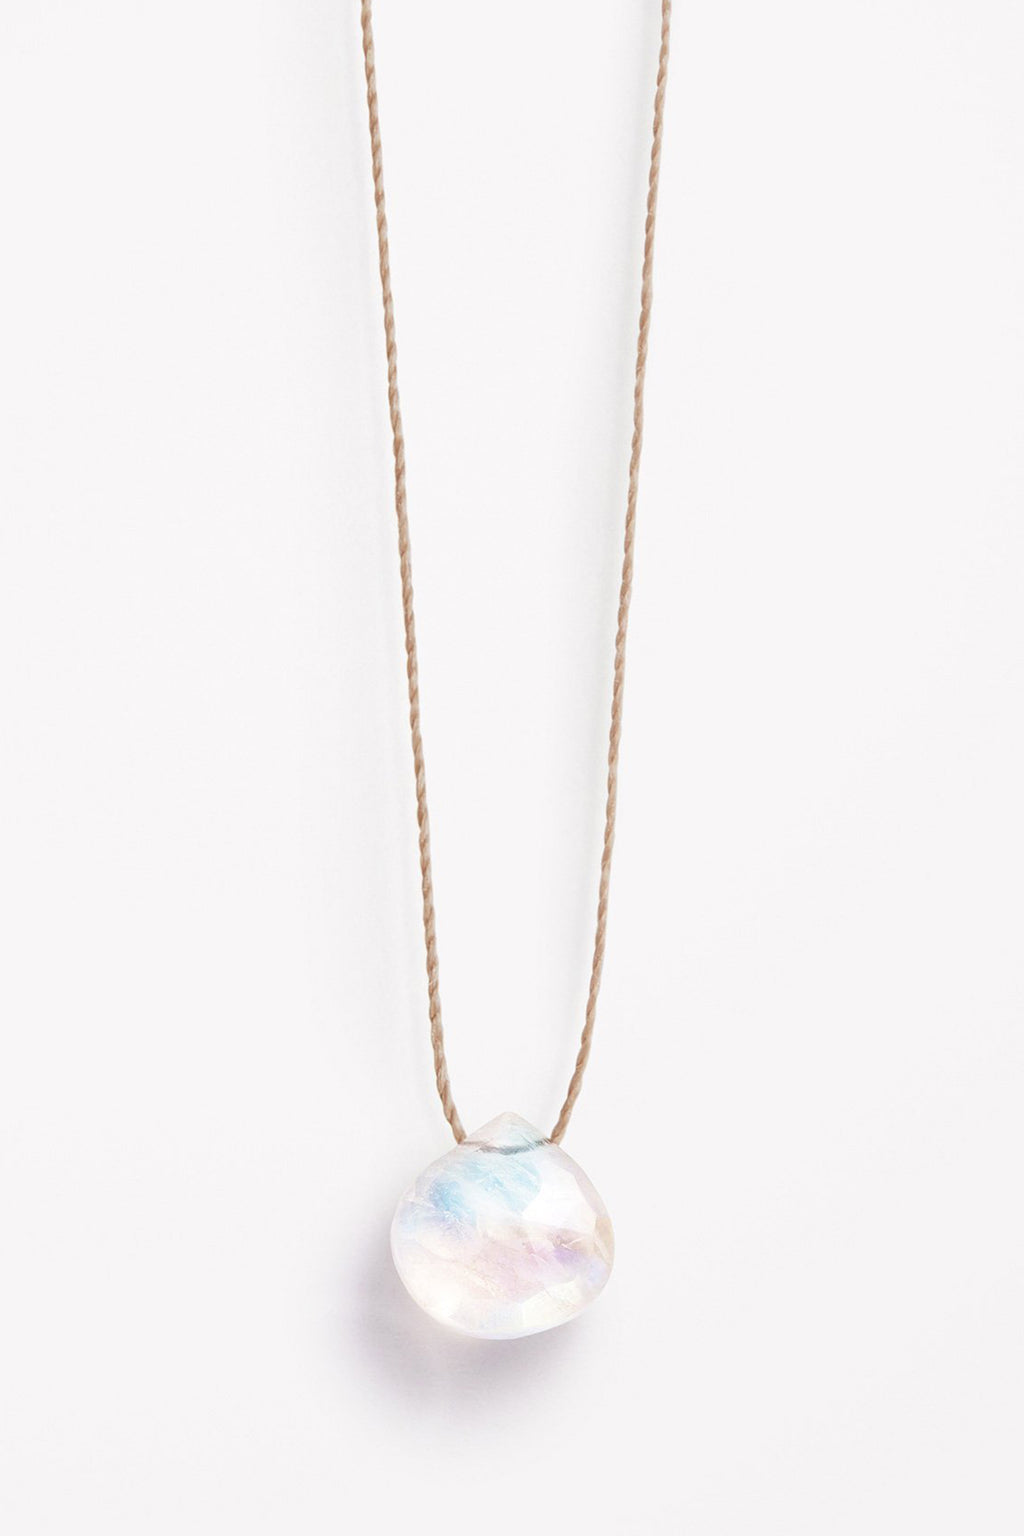 Wanderlust Life Rainbow Moonstone Necklace - The Mercantile London